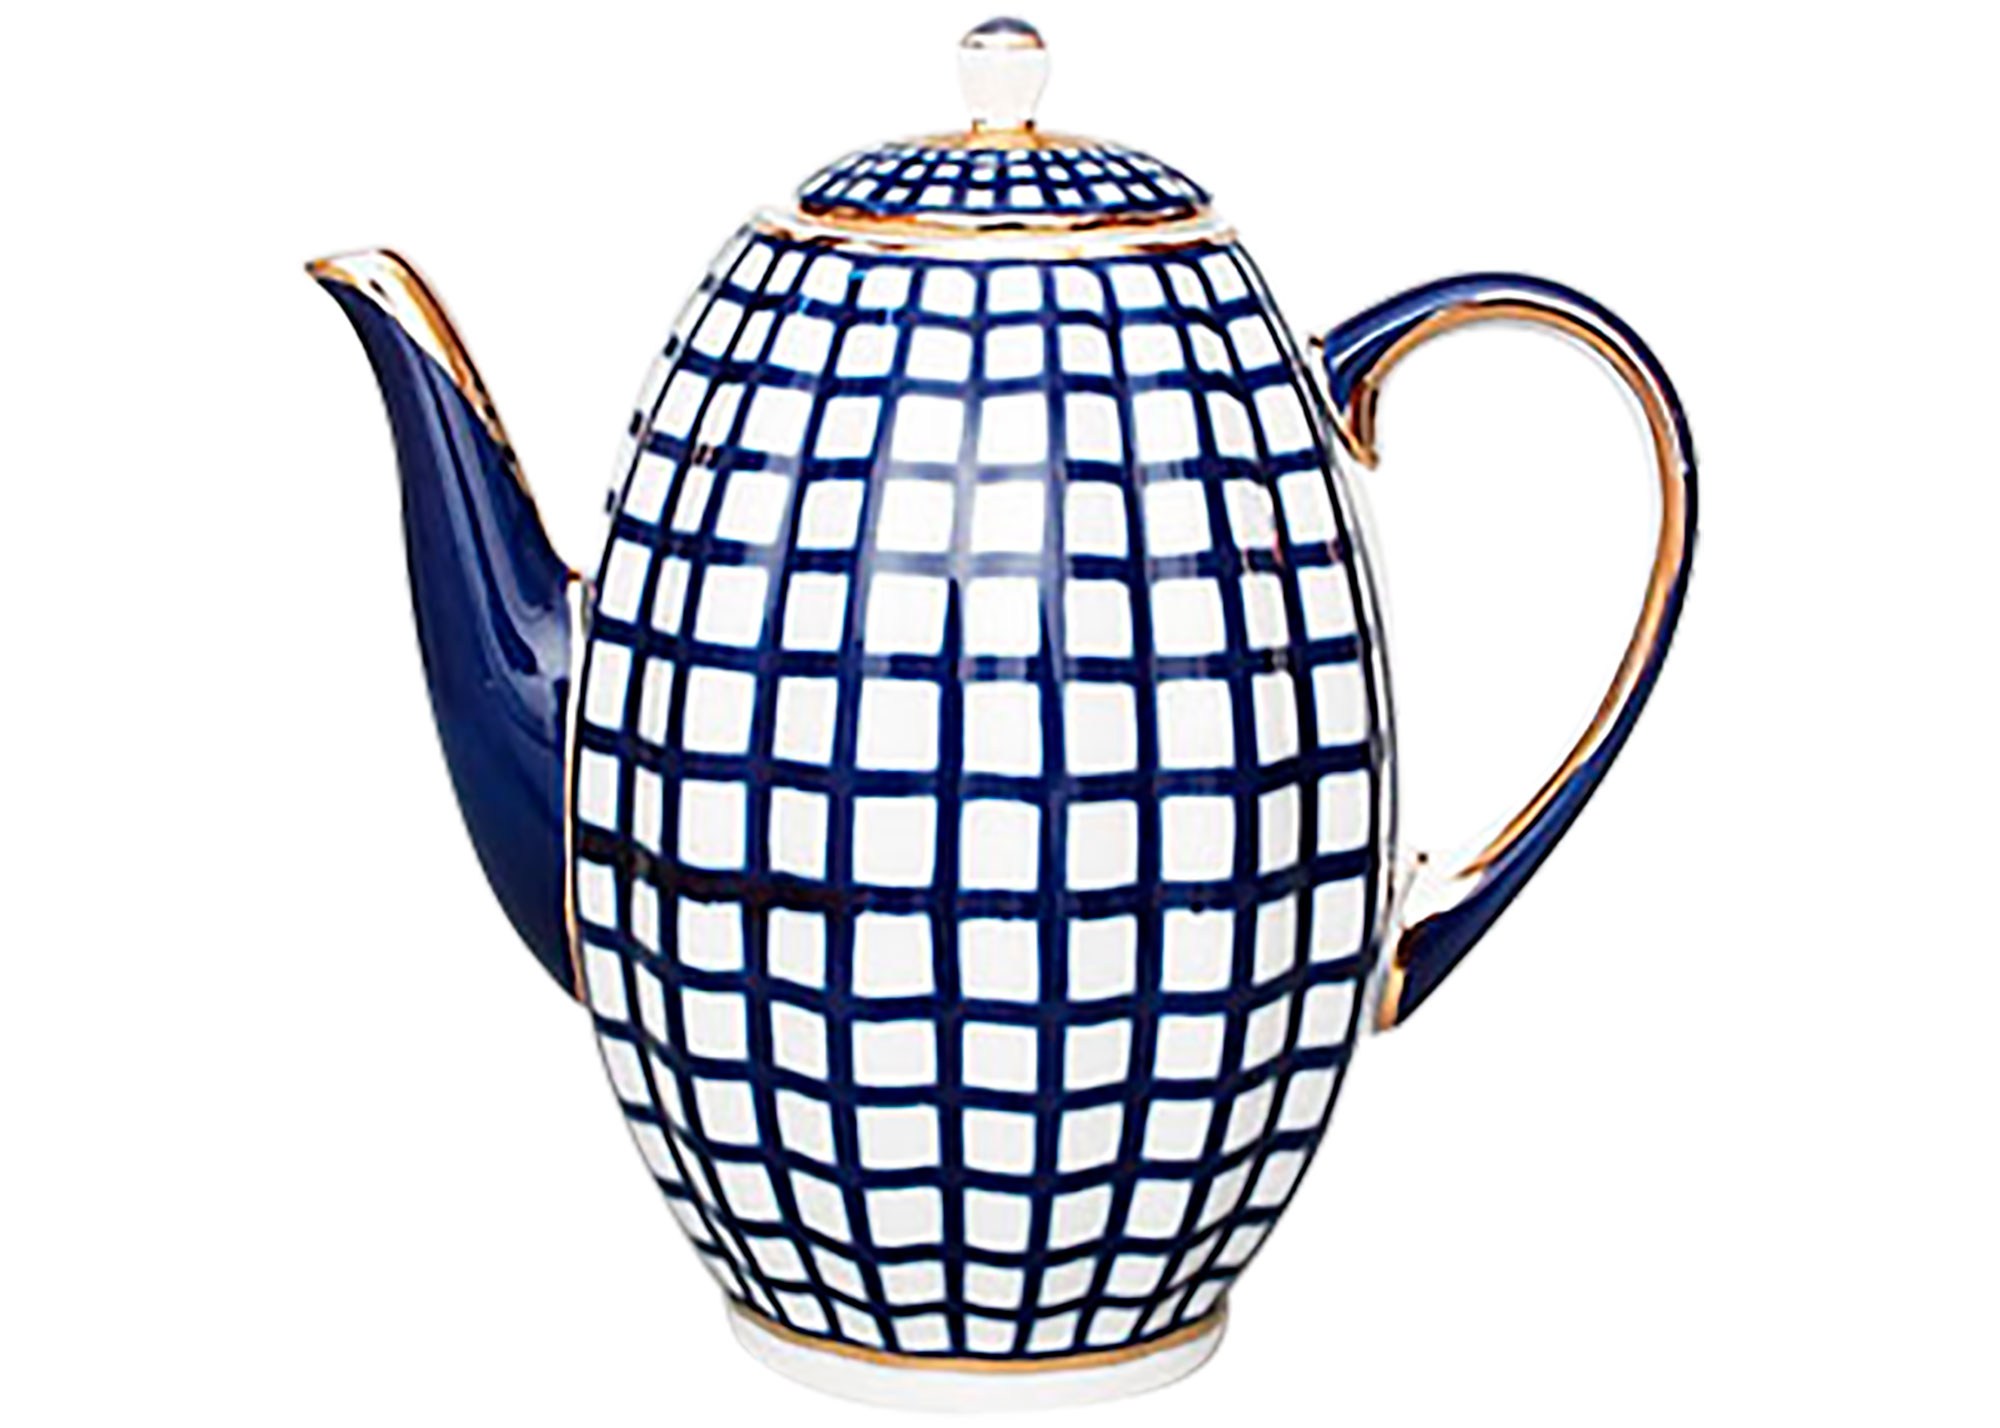 Buy Quatro Coffeepot at GoldenCockerel.com